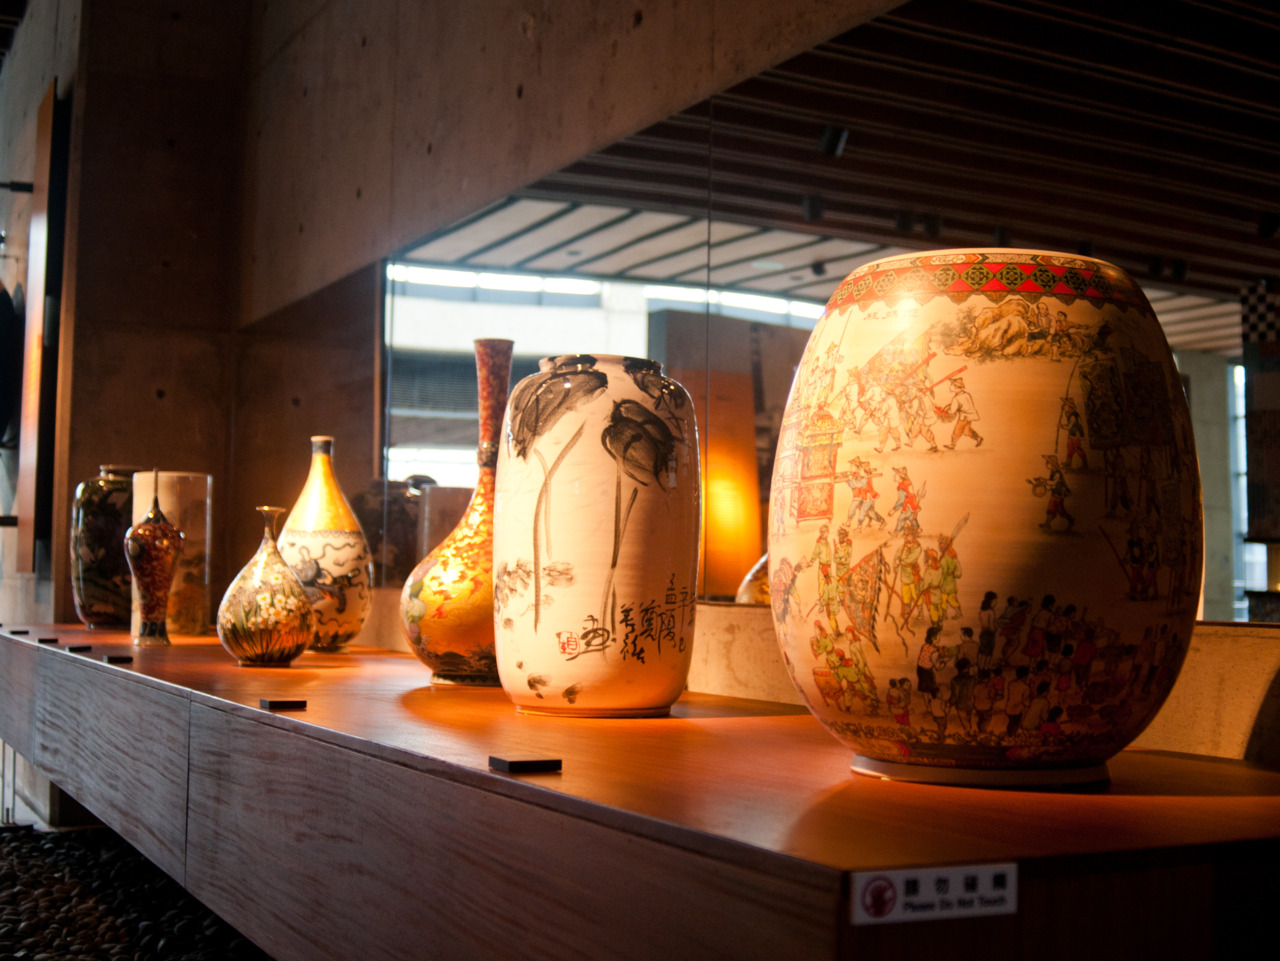 Taiwan is famous for its ceramics.